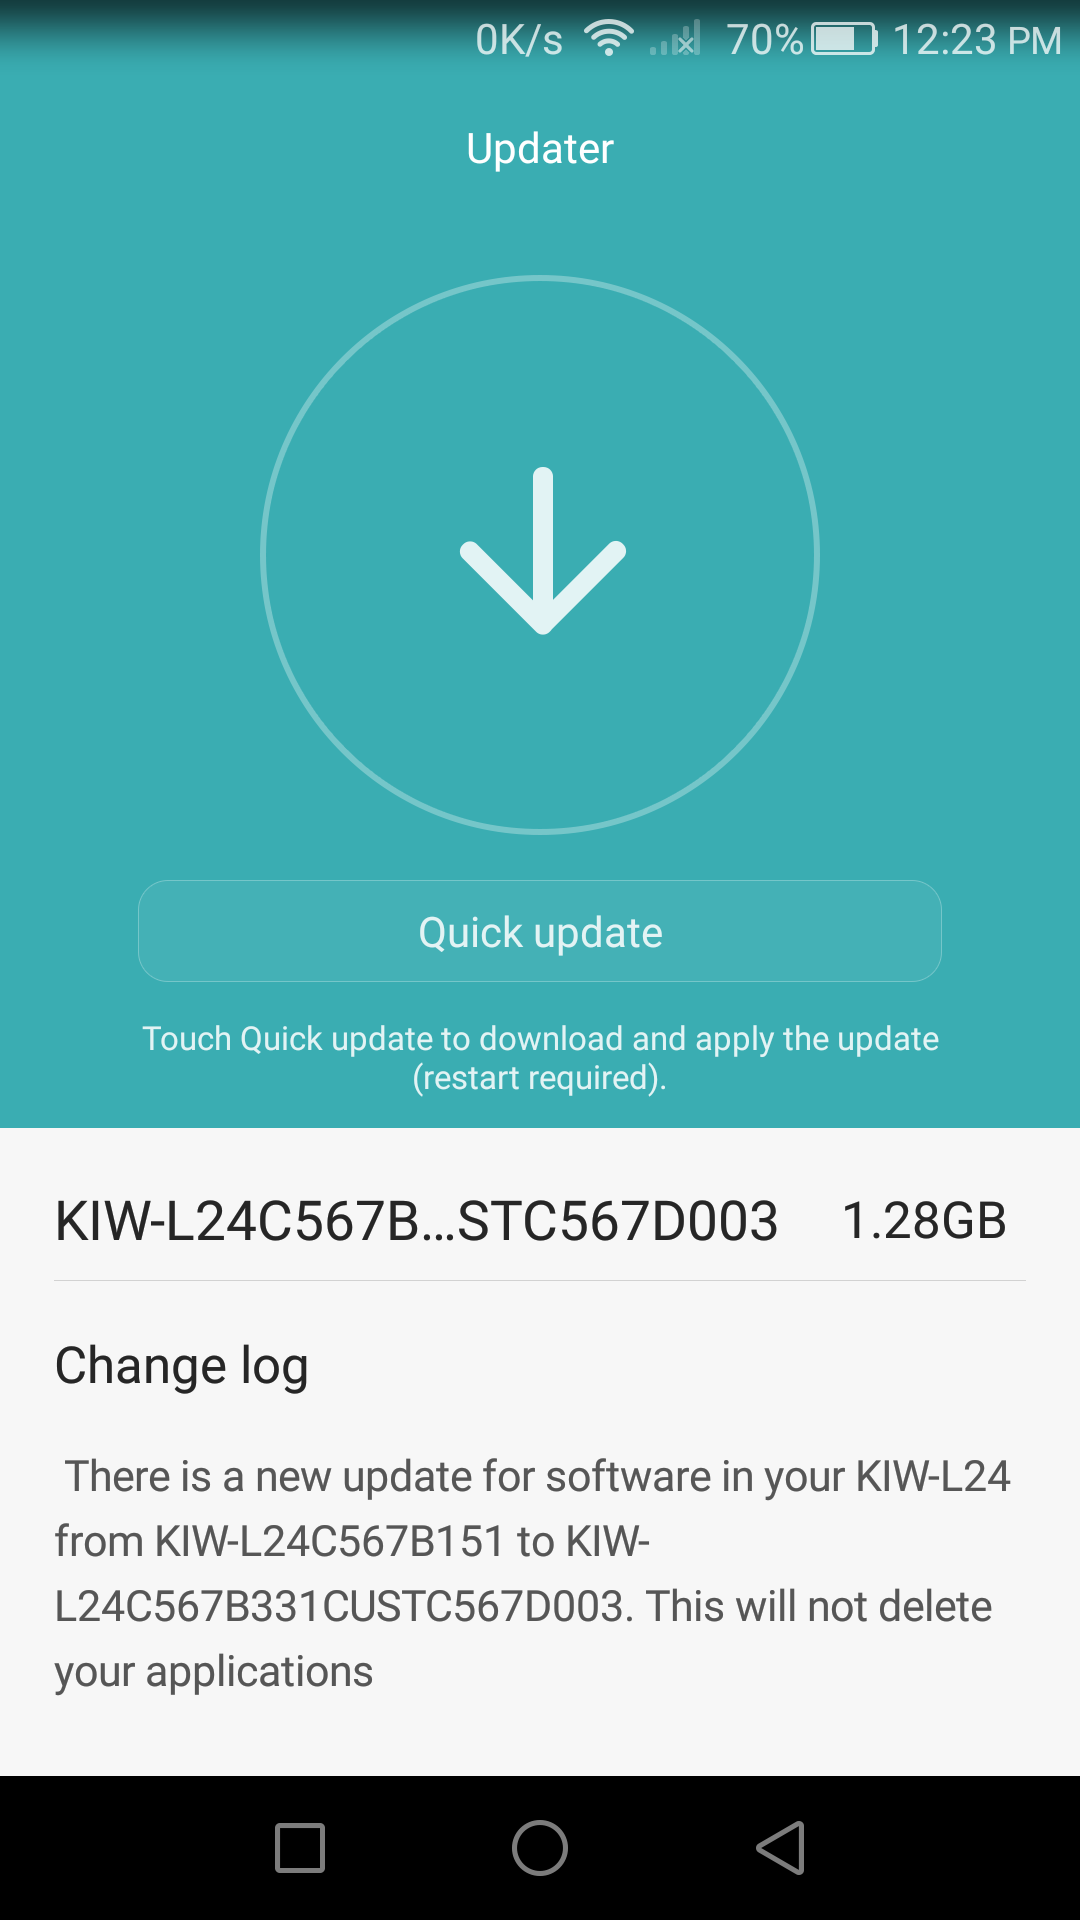 Screenshot_2016-08-20-12-23-44 Android 6 update.png